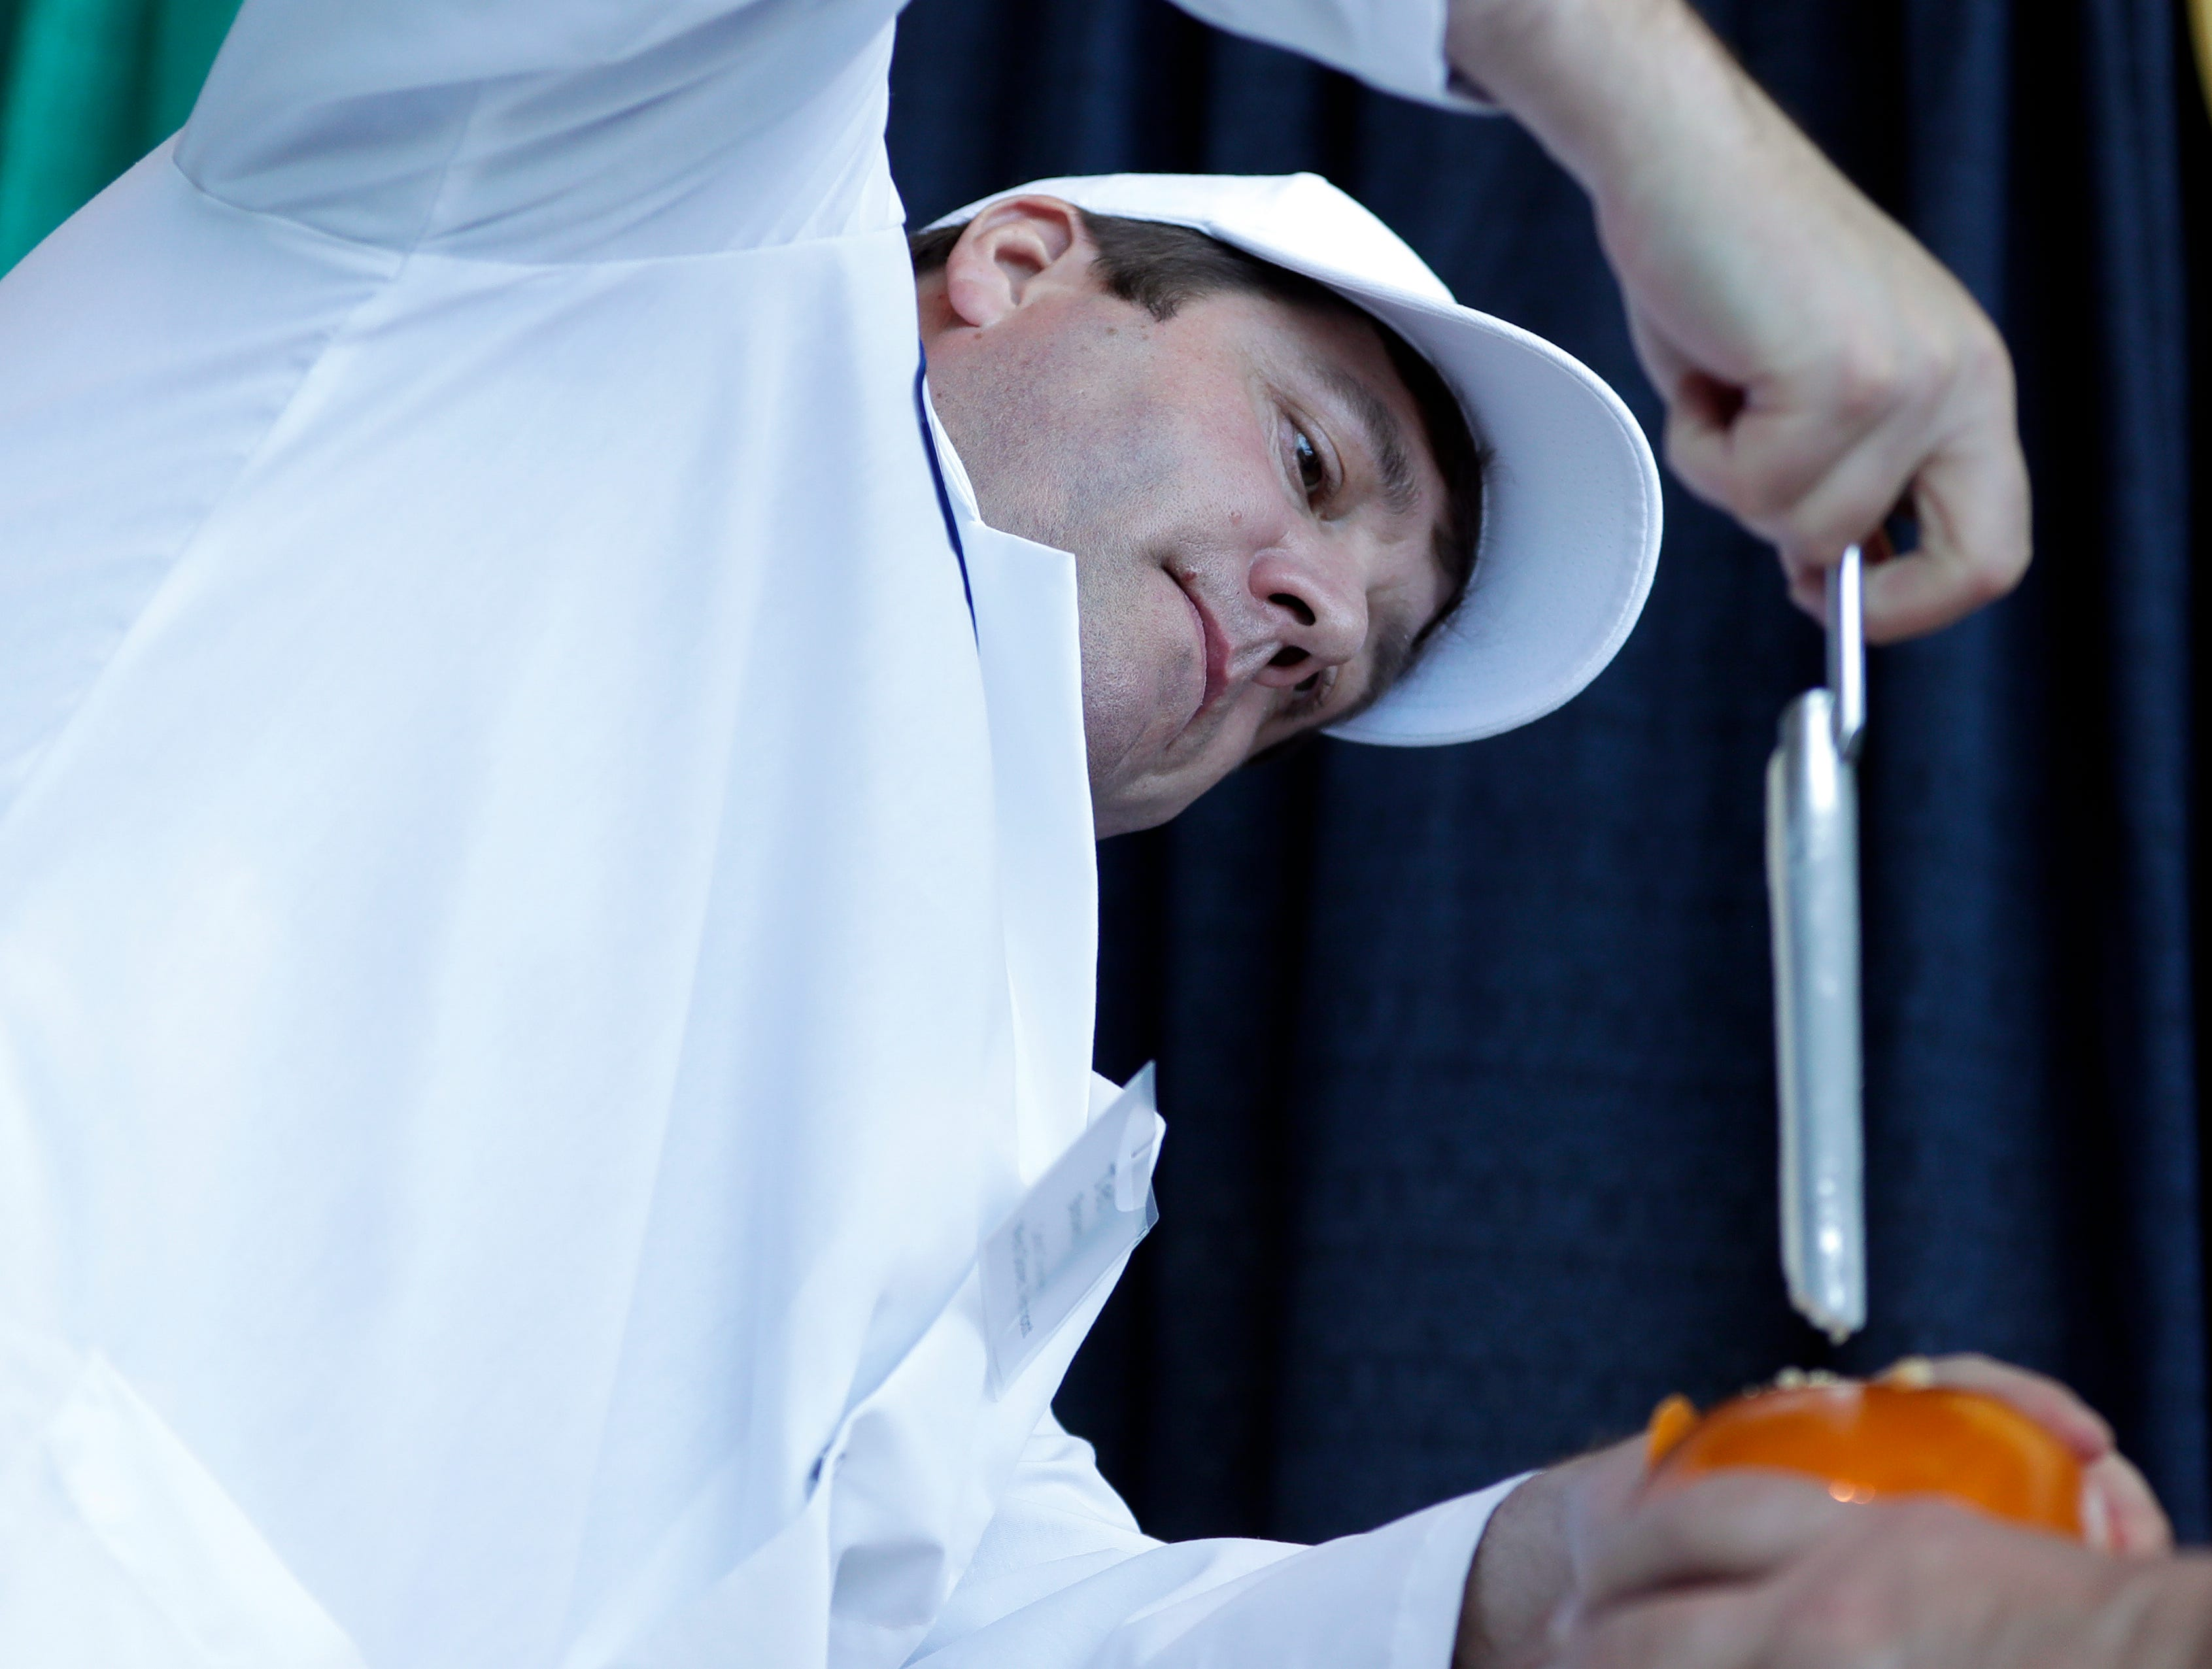 Ted Brown of Cabot Creamery in Vermont, pulls a sample from a smoked gouda during the U.S. Championship Cheese Contest on March 5, 2019 at Lambeau Field in Green Bay, Wis. Sarah Kloepping/USA TODAY NETWORK-Wisconsin